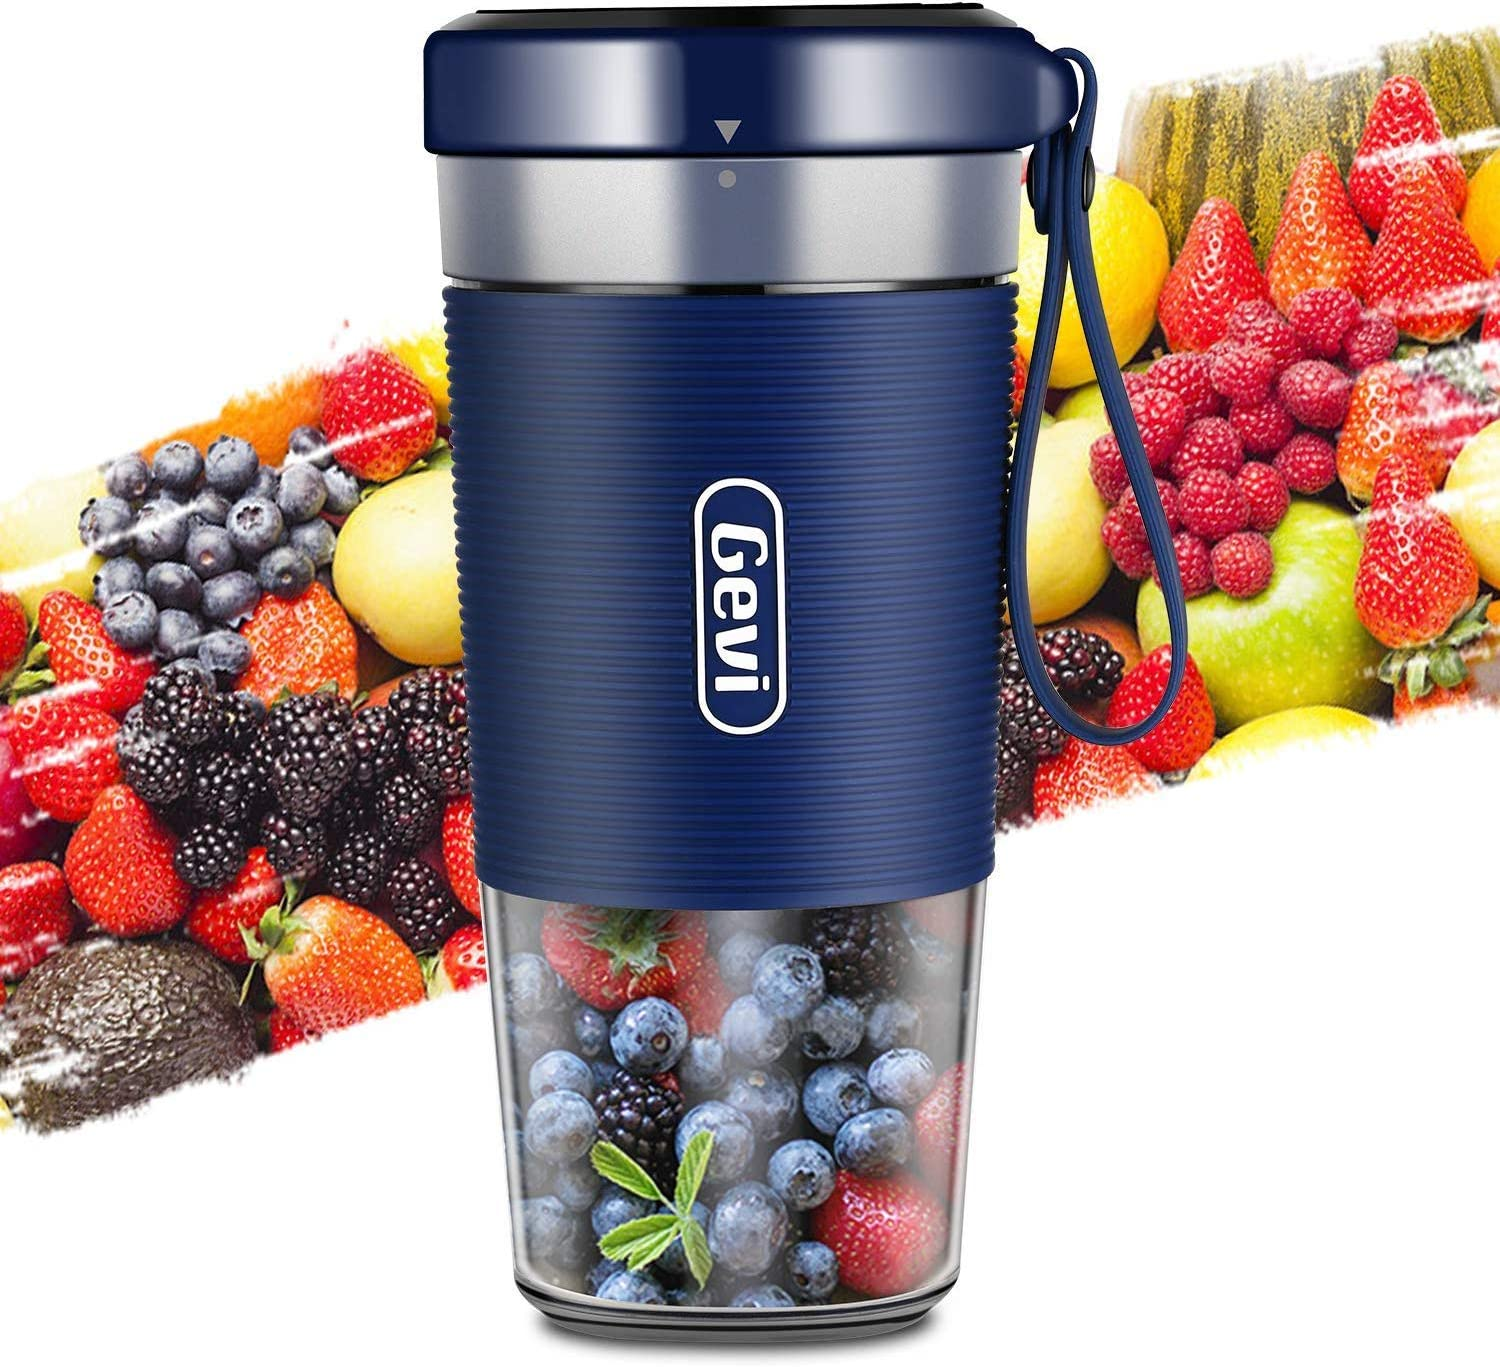 Portable Blender for Juice, Shakes(HK-RV-GEBLA089-N-29), Cordless Personal Size Blenders with USB, Juicer Mixer Cup BPA free and Stainless Steel blade